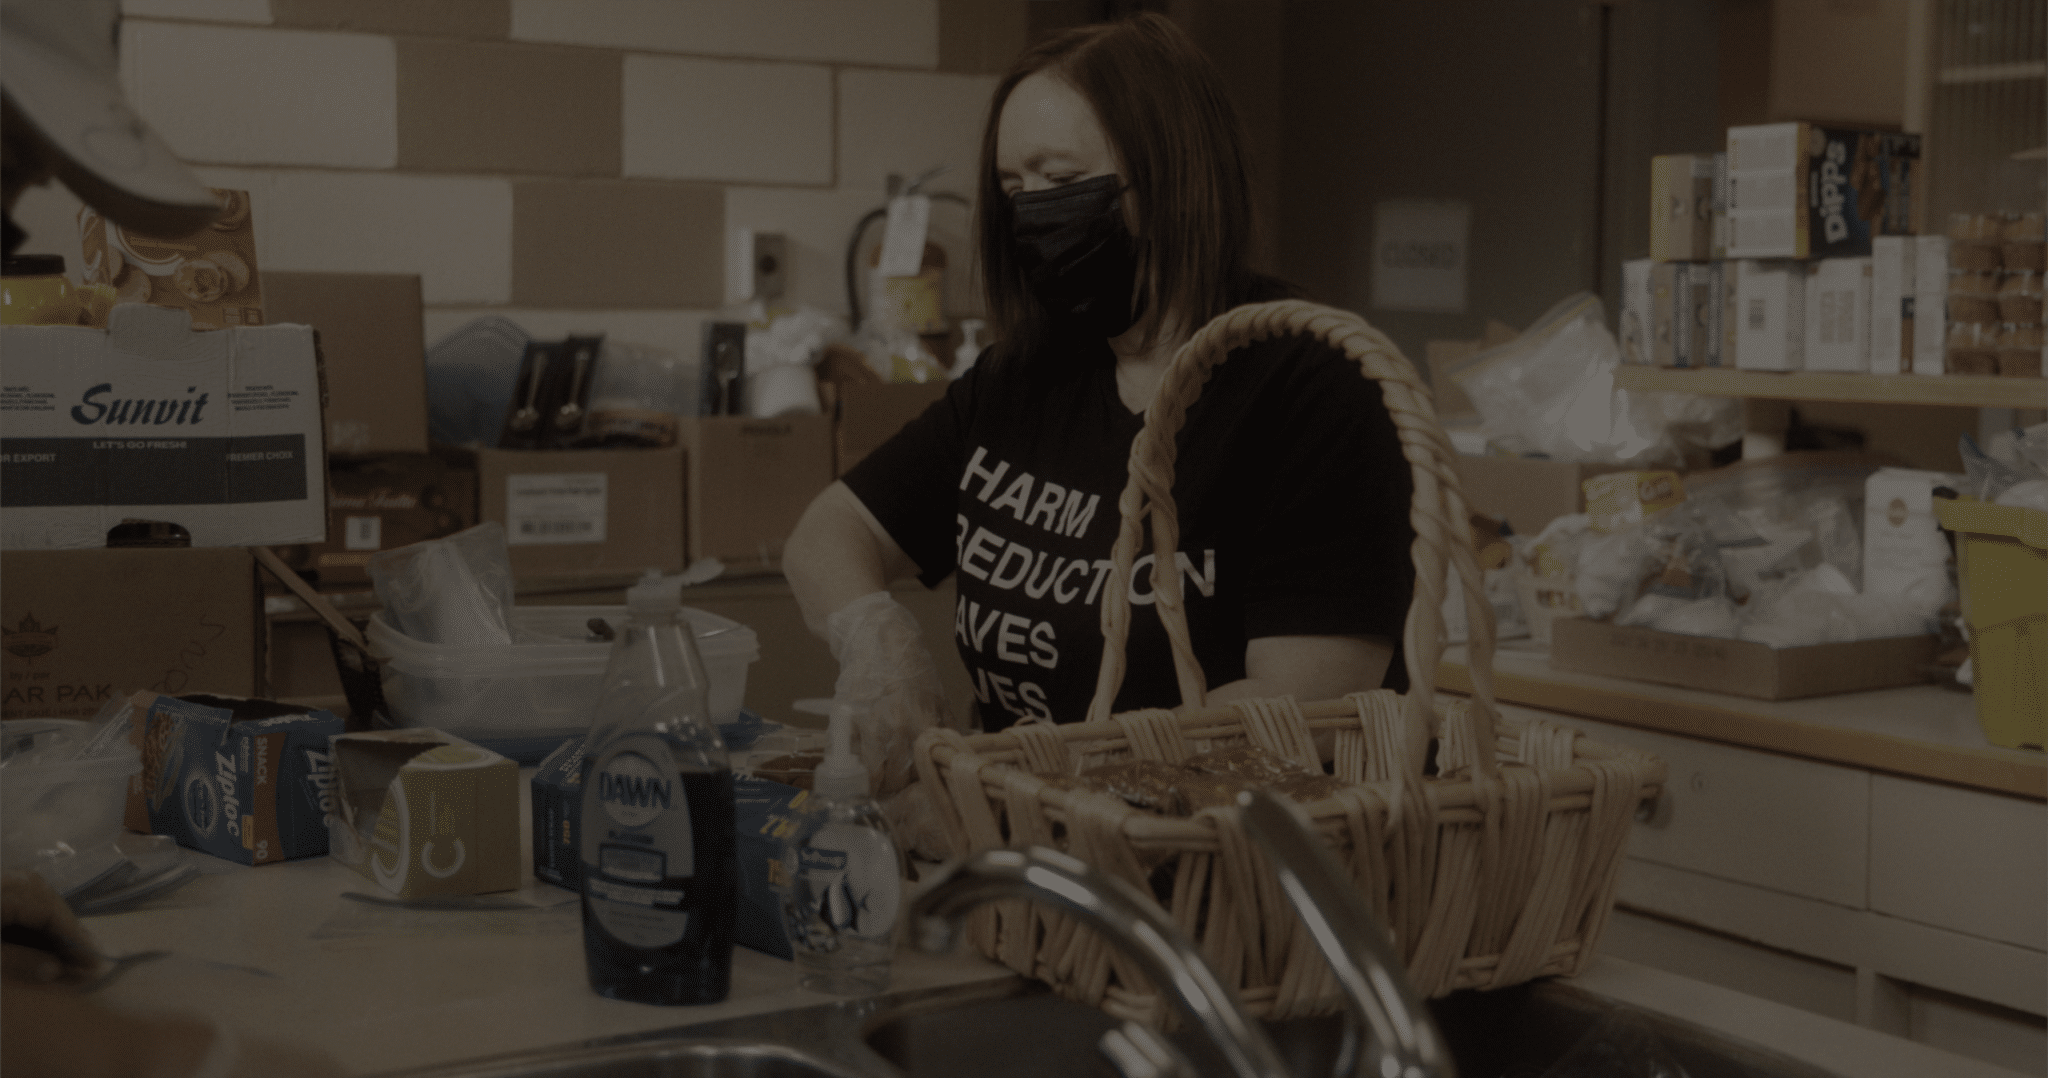 A woman packing food in a kitchen